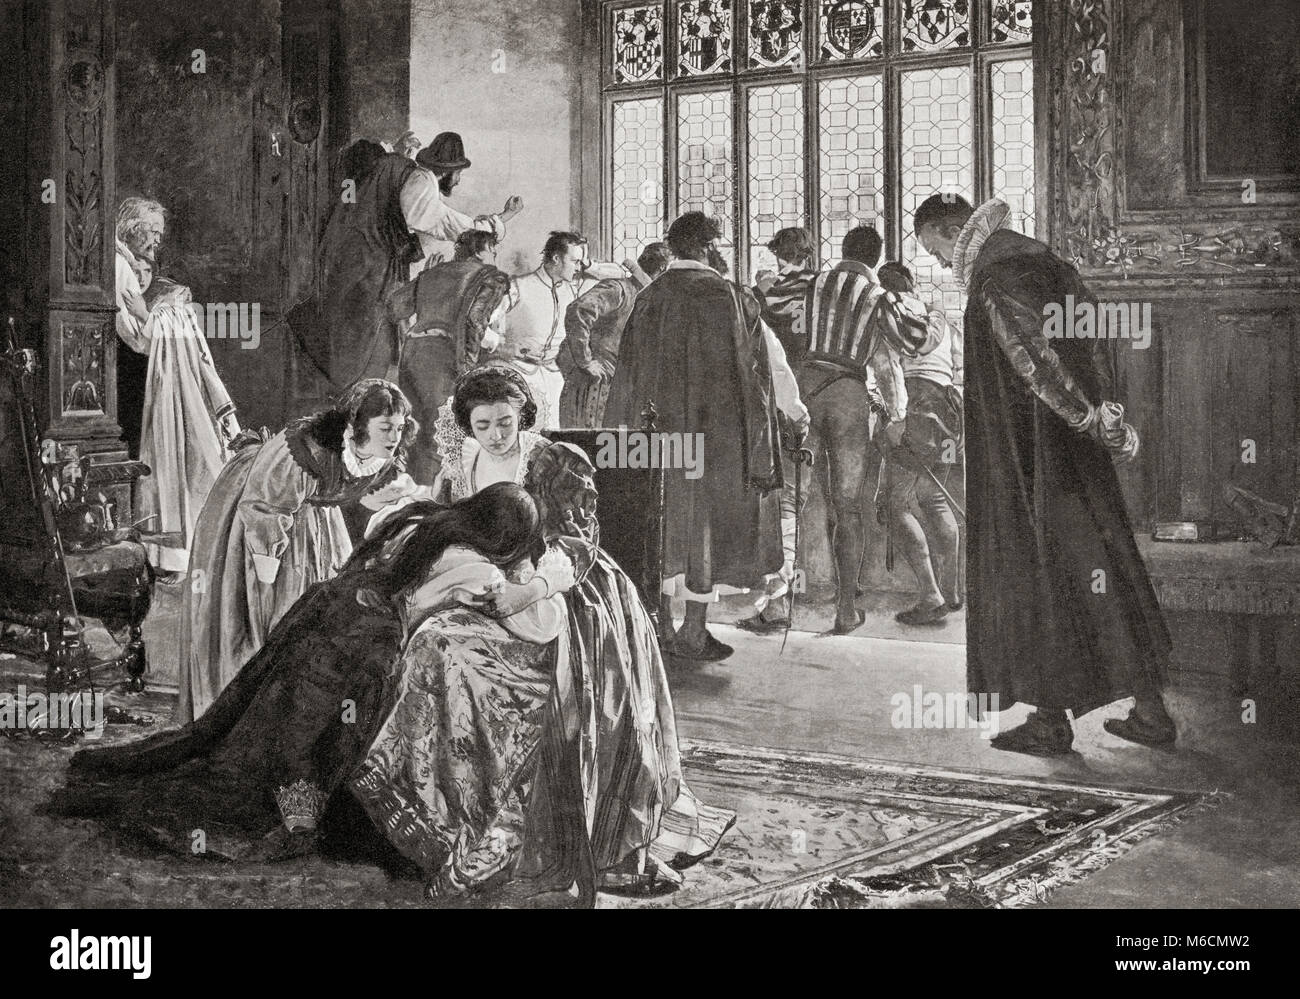 Huguenots taking refuge in the English embassy during The St. Bartholomew's Day Massacre, Paris, France, 1572.  A targeted group of assassinations and a wave of Catholic mob violence directed against the Huguenots during the French Wars of Religion, believed to have been instigated by Catherine de' Medici.   From Hutchinson's History of the Nations, published 1915. Stock Photo